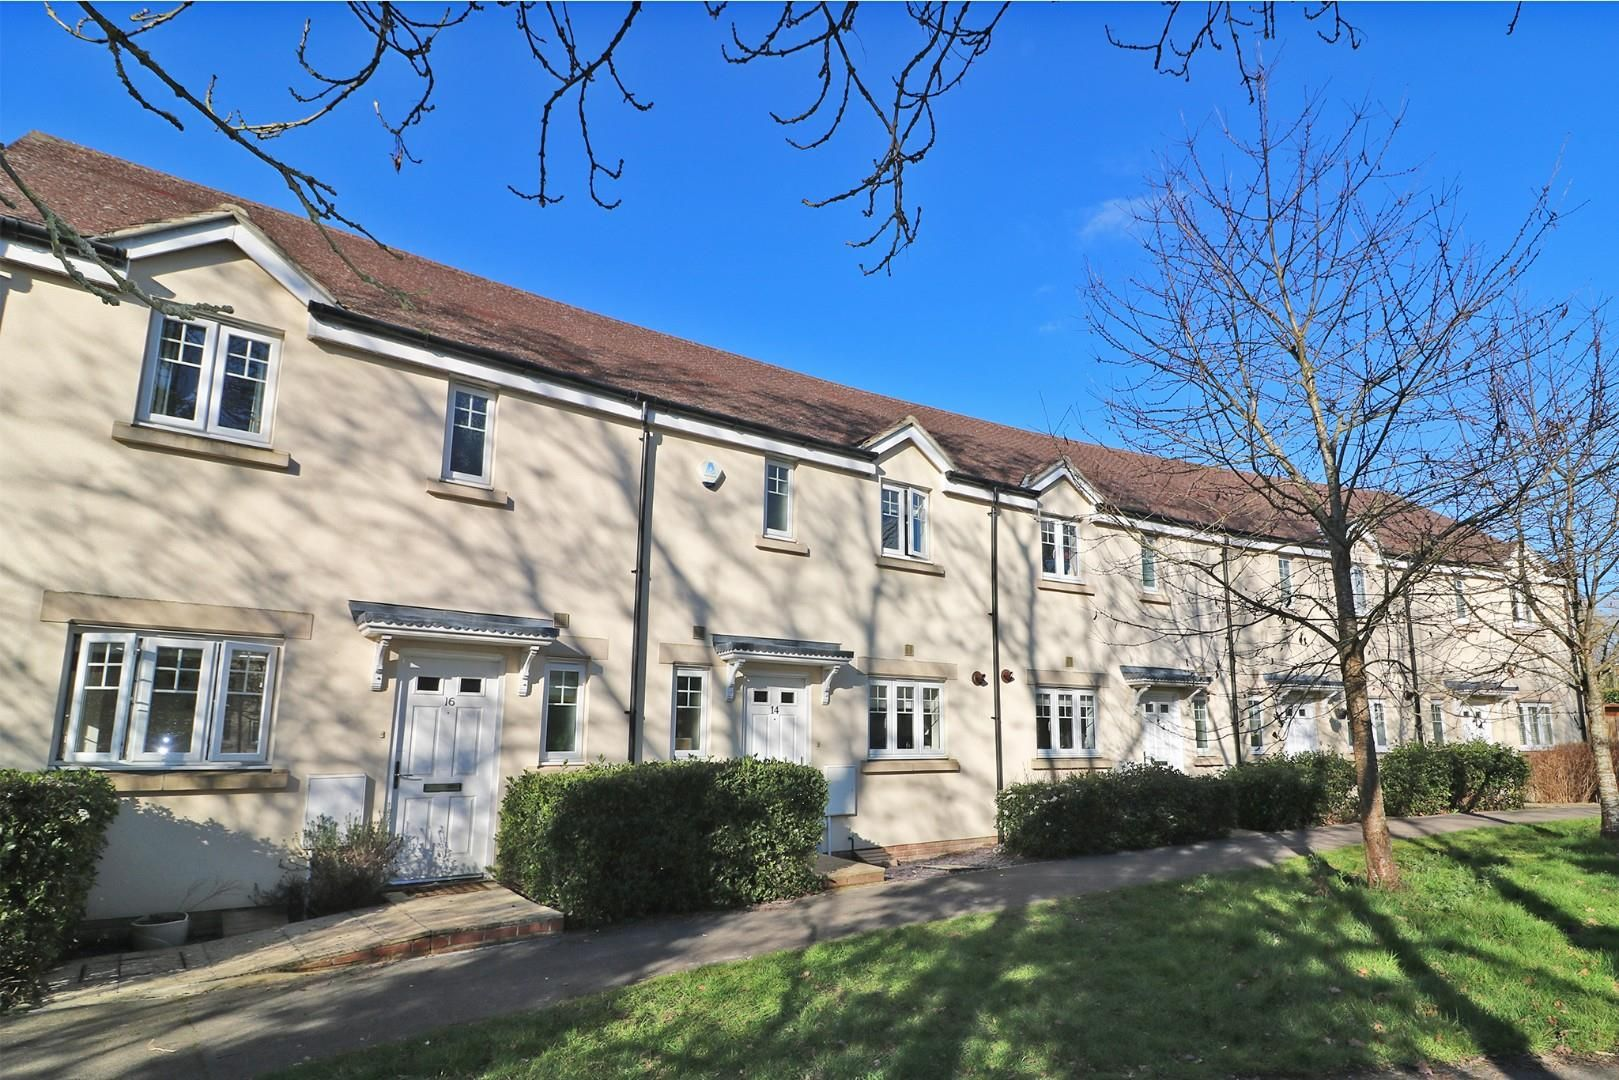 3 bed house for sale, RG40